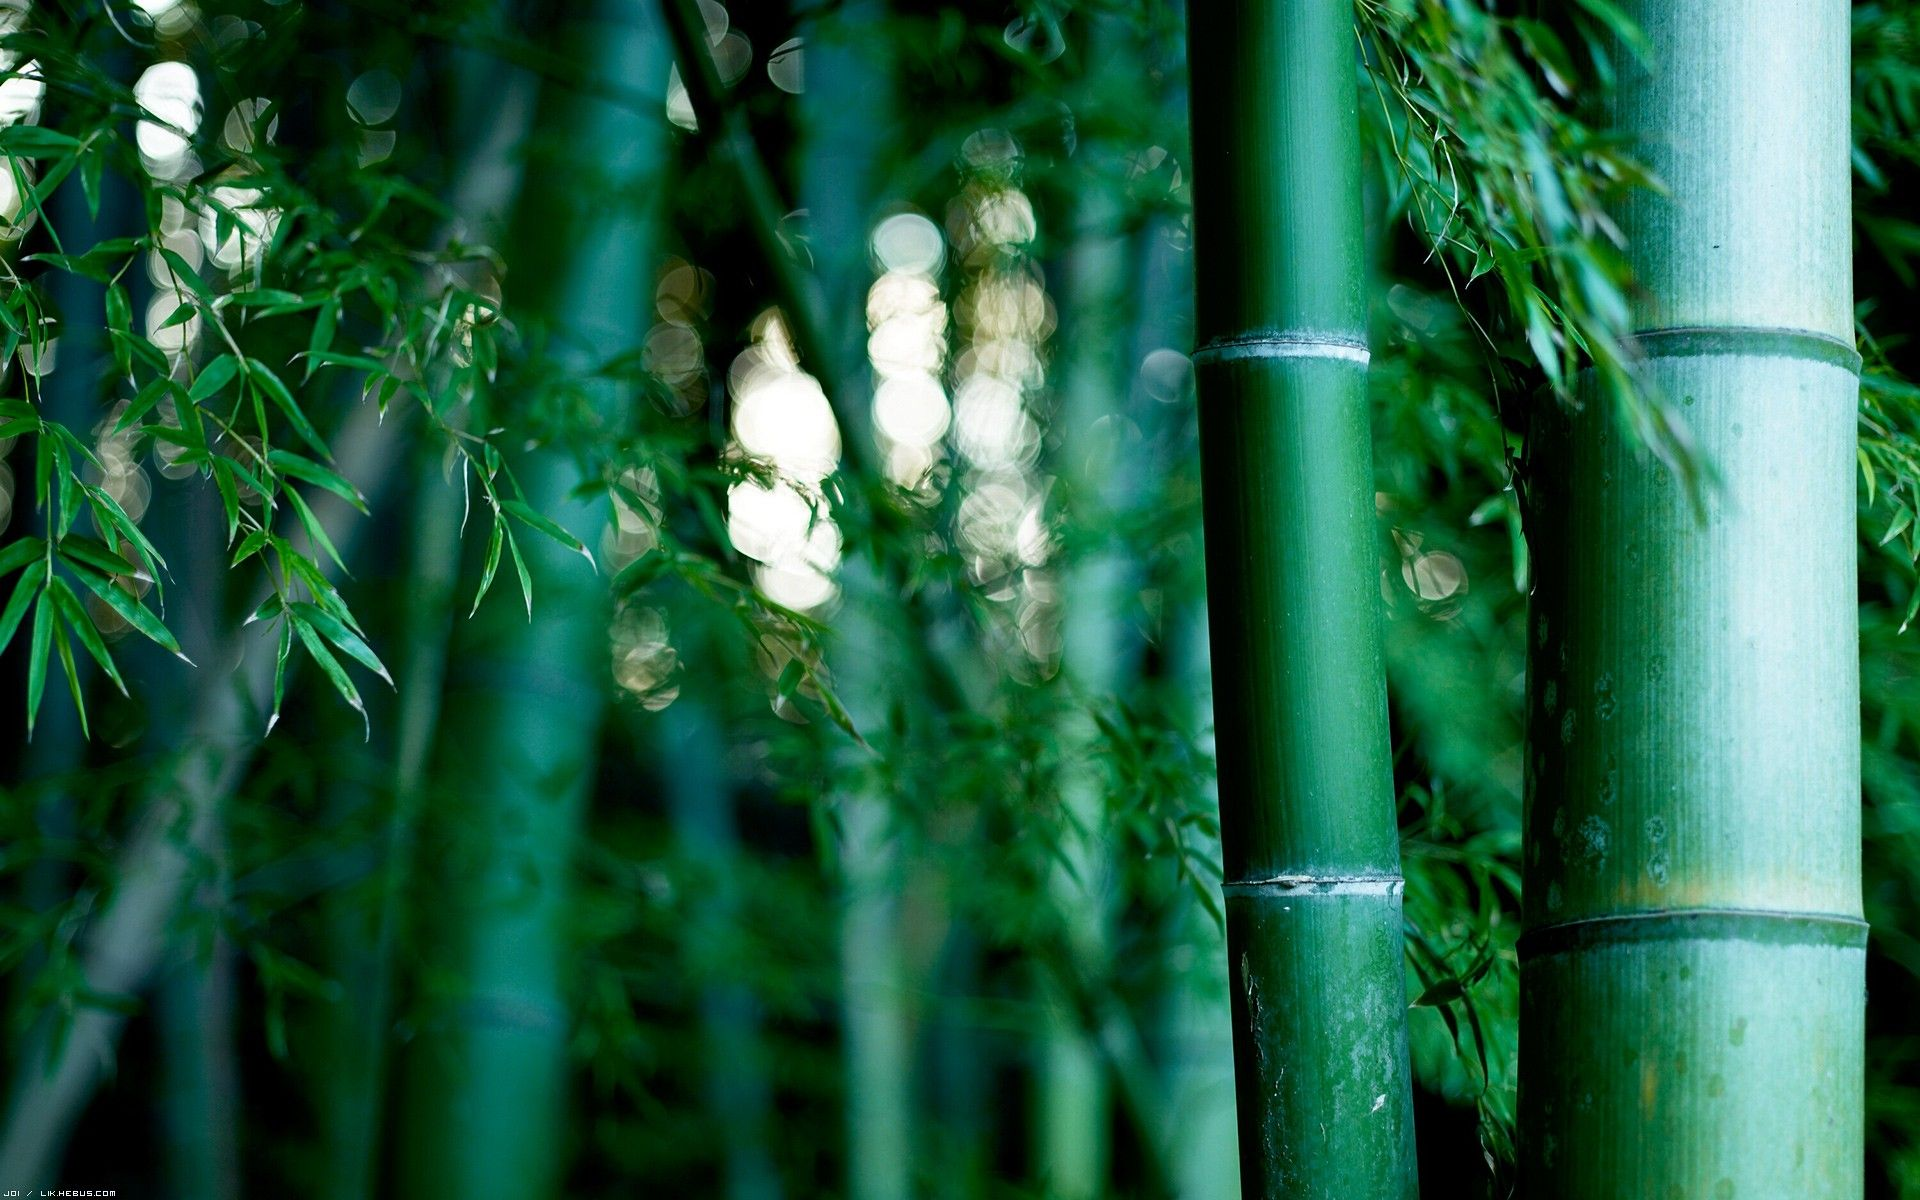 bamboo images free